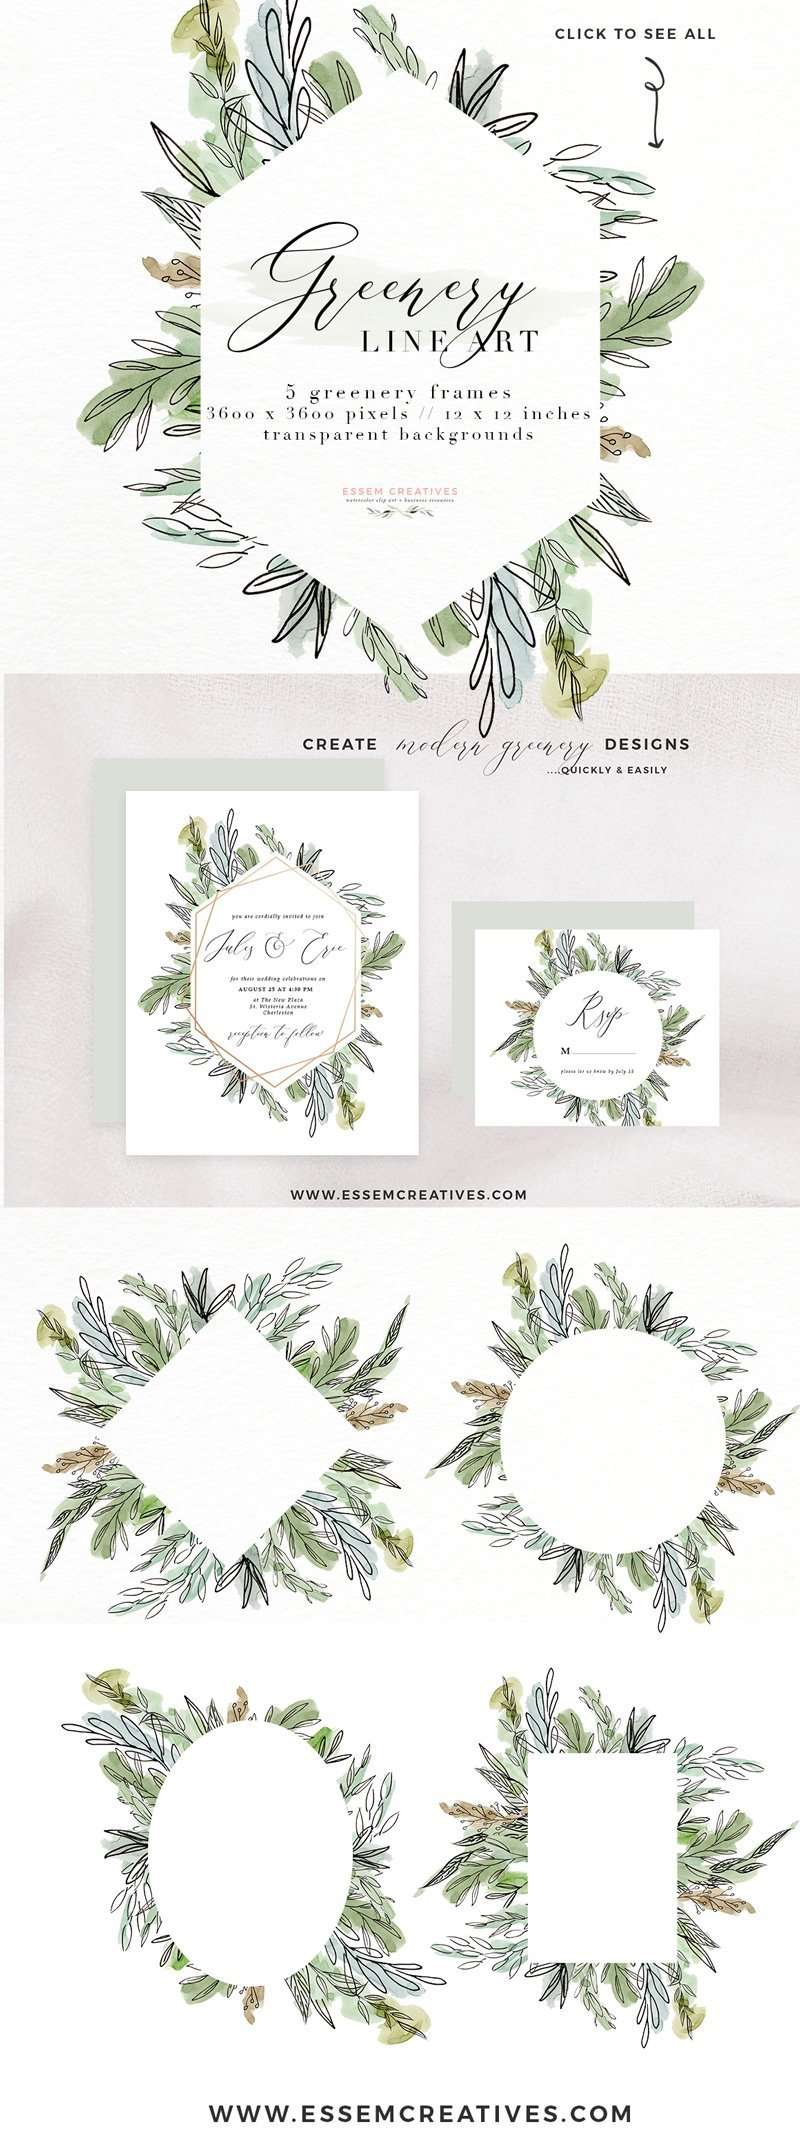 Watercolor Greenery Line Art PNG Clipart Tropical Rustic Botanical Geometric Rose Gold Wedding Invitation Logo